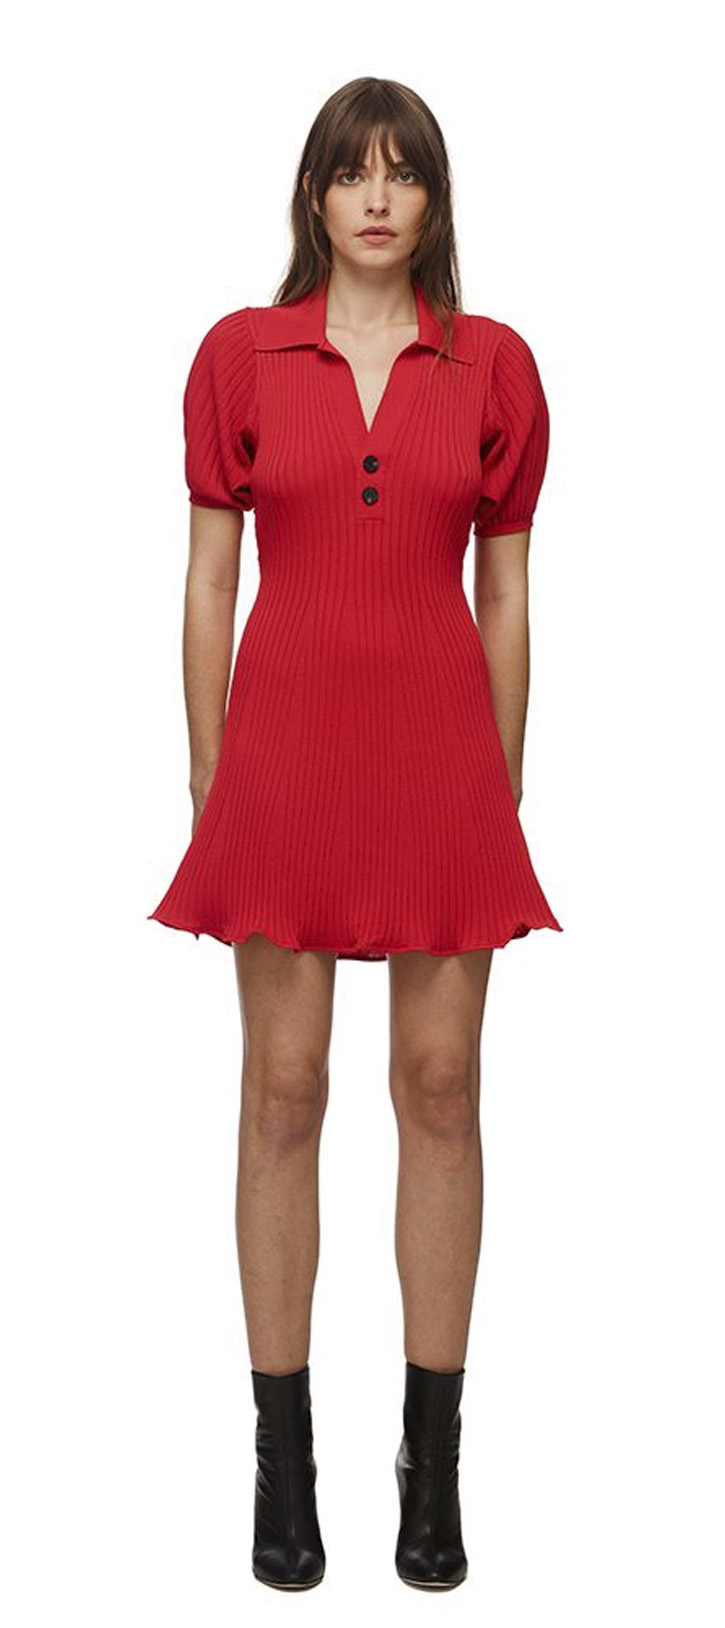 084M RED RIB KNIT MINI DRESS